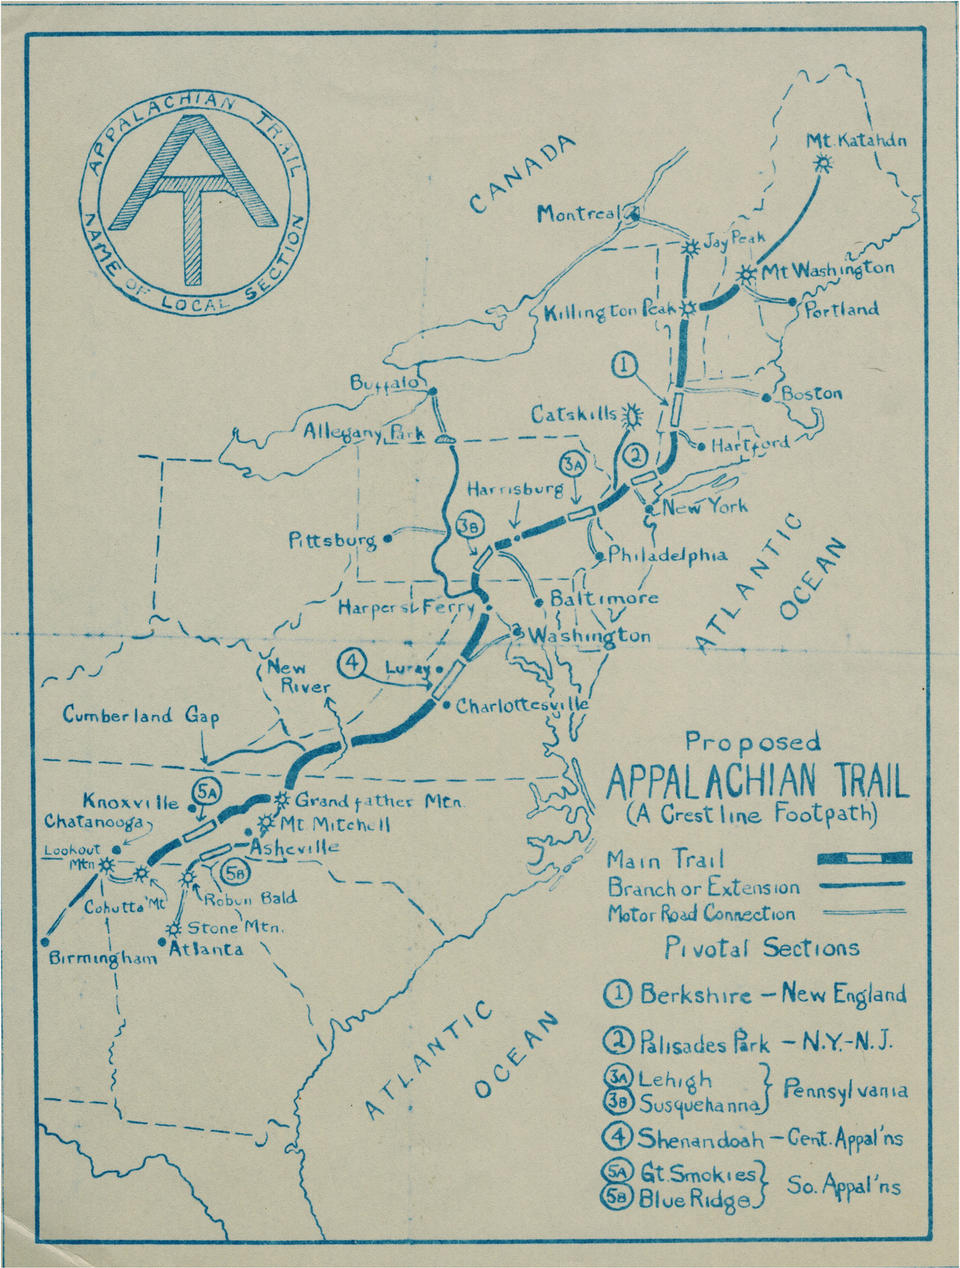 Appalachian Trail New England Map.How To Thru Hike The Appalachian Trail A 101 Guide